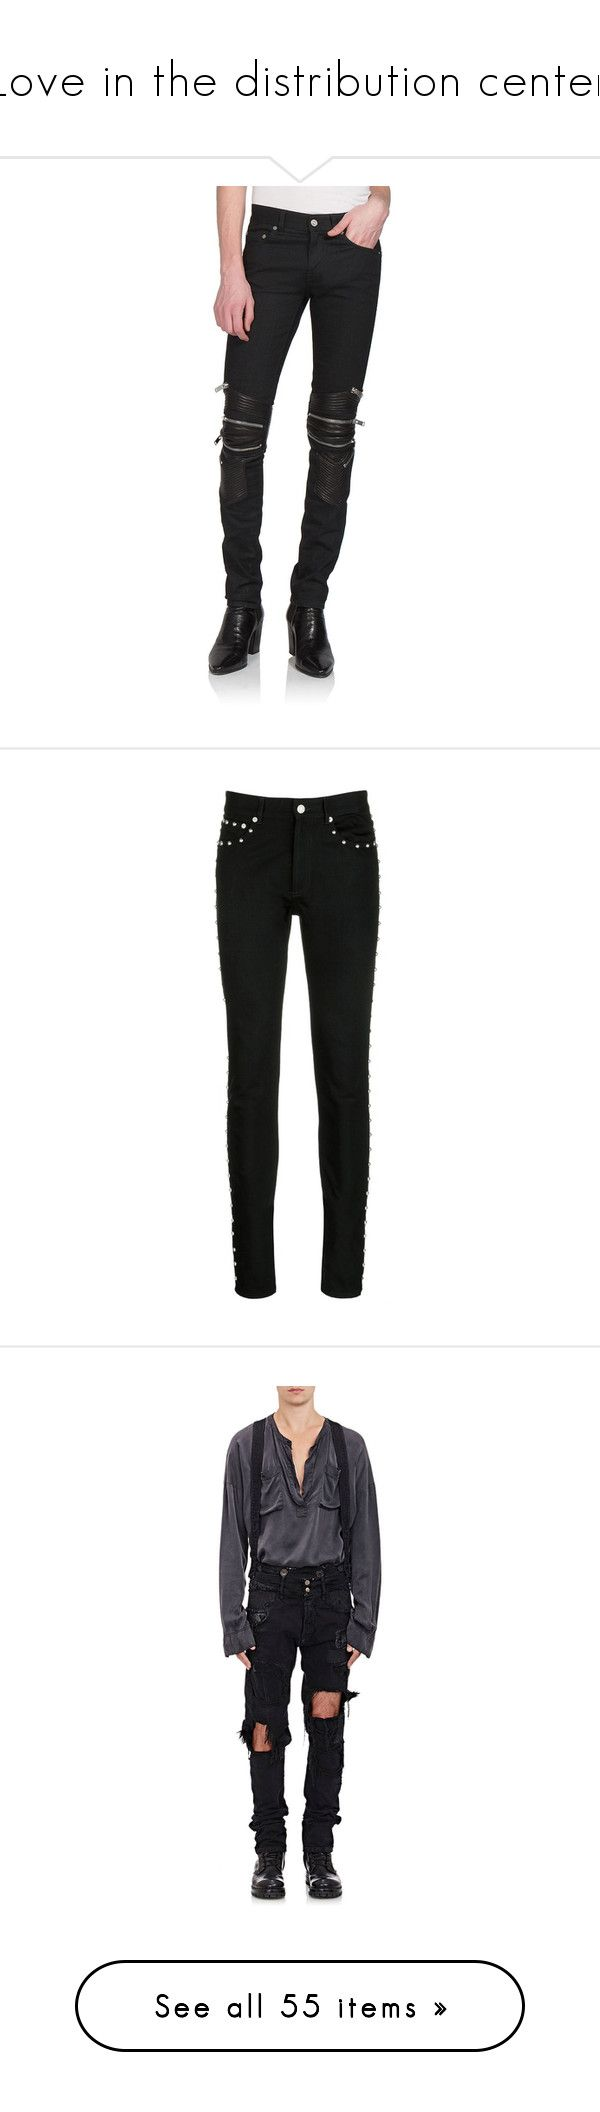 """Love in the distribution center"" by t9jch ❤ liked on Polyvore featuring men's fashion, men's clothing, men's jeans, apparel & accessories, black, mens leather skinny jeans, mens leather jeans, mens studded jeans, mens rock and roll jeans and mens jumpsuit"